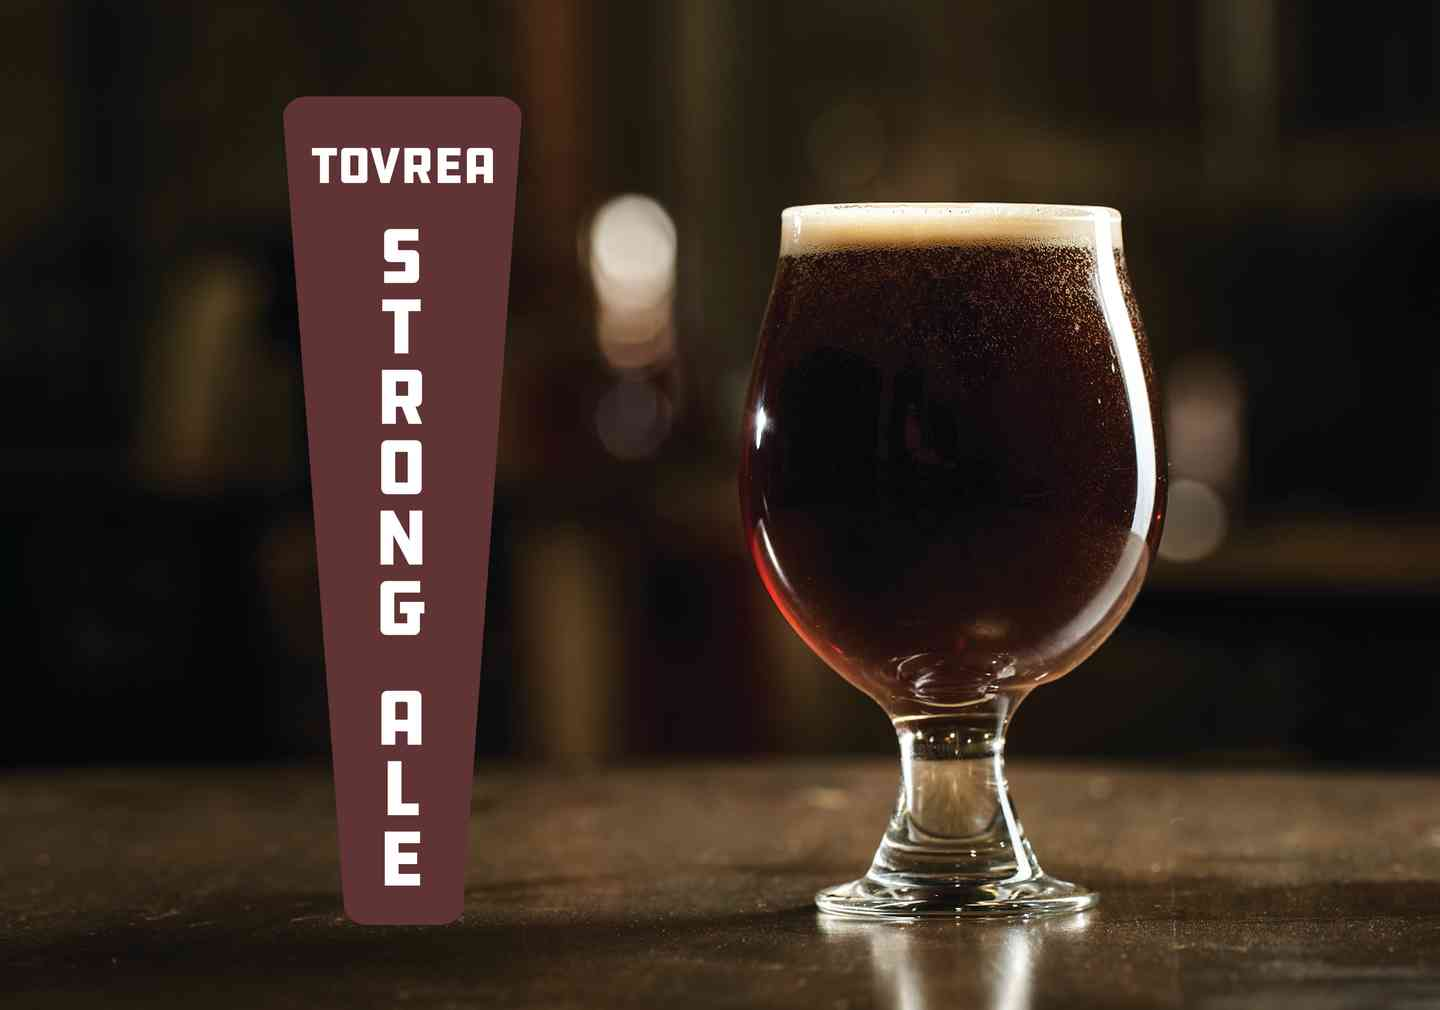 Tovrea Strong Ale